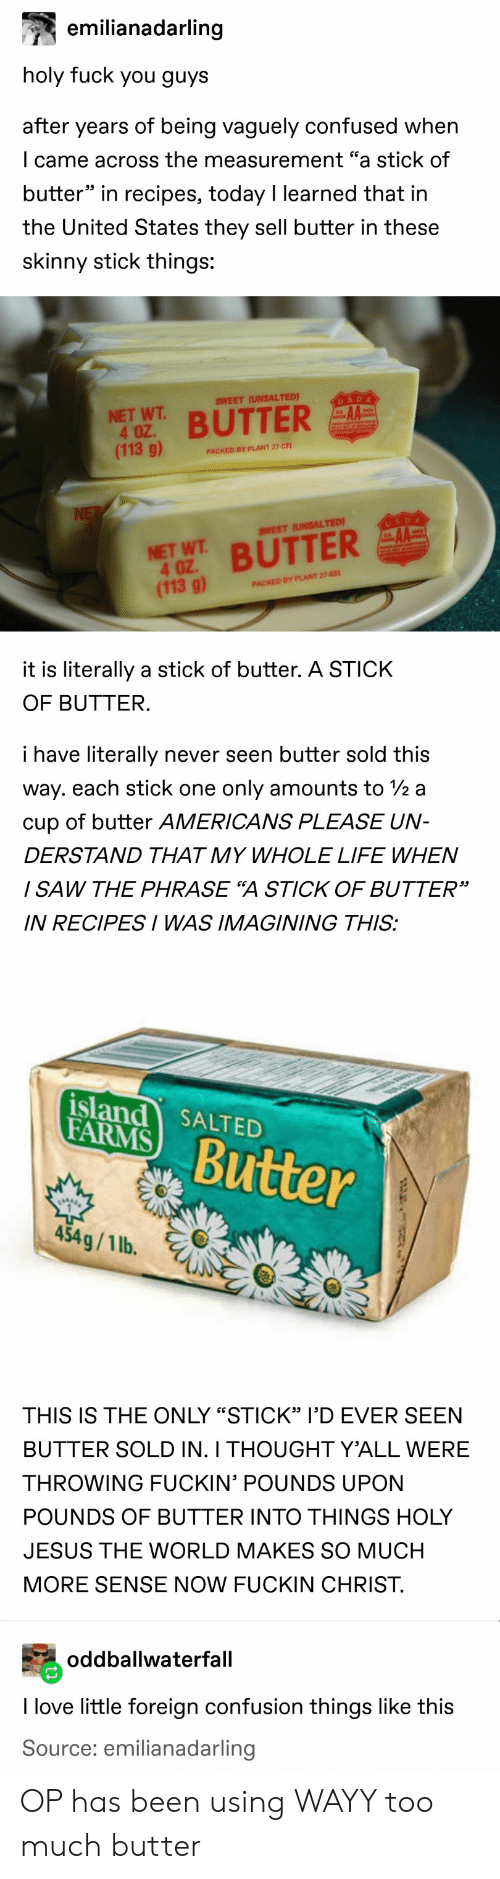 """farms: emilianadarling  holy fuck you guys  after years of being vaguely confused when  I came across the measurement """"a stick of  butter"""" in recipes, today I learned that in  the United States they sell butter in these  skinny stick things:  SWEET (UNSALTED)  USDA  NET WT  4 OZ.  (113 g)  BUTTER  PACKED BY PLANT 27-031  NE  USDA  SWEET (UNSALTED)  NET WT BUTTER  4 OZ  (113 g)  PACKED BY PLANT 27-031  it is literally a stick of butter. A STICK  OF BUTTER.  i have literally  never seen butter sold this  way. each stick one  only amounts to /2 a  cup of butter AMERICANS PLEASE UN-  DERSTAND THAT MY WHOLE LIFE WHEN  / SAW THE PHRASE """"A STICK OF BUTTER""""  IN RECIPESI WAS IMAGINING THIS:  island SALTED  FARMS  Butter  454g/1 lb.  THIS IS THE ONLY """"STICK"""" l'D EVER SEEN  BUTTER SOLD IN. I THOUGHT Y'ALL WERE  THROWING FUCKIN' POUNDS UPON  POUNDS OF BUTTER INTO THINGS HOLY  JESUS THE WORLD MAKES SO MUCH  MORE SENSE NOW FUCKIN CHRIST.  oddballwaterfall  I love little foreign confusion things like this  Source: emilianadarling OP has been using WAYY too much butter"""